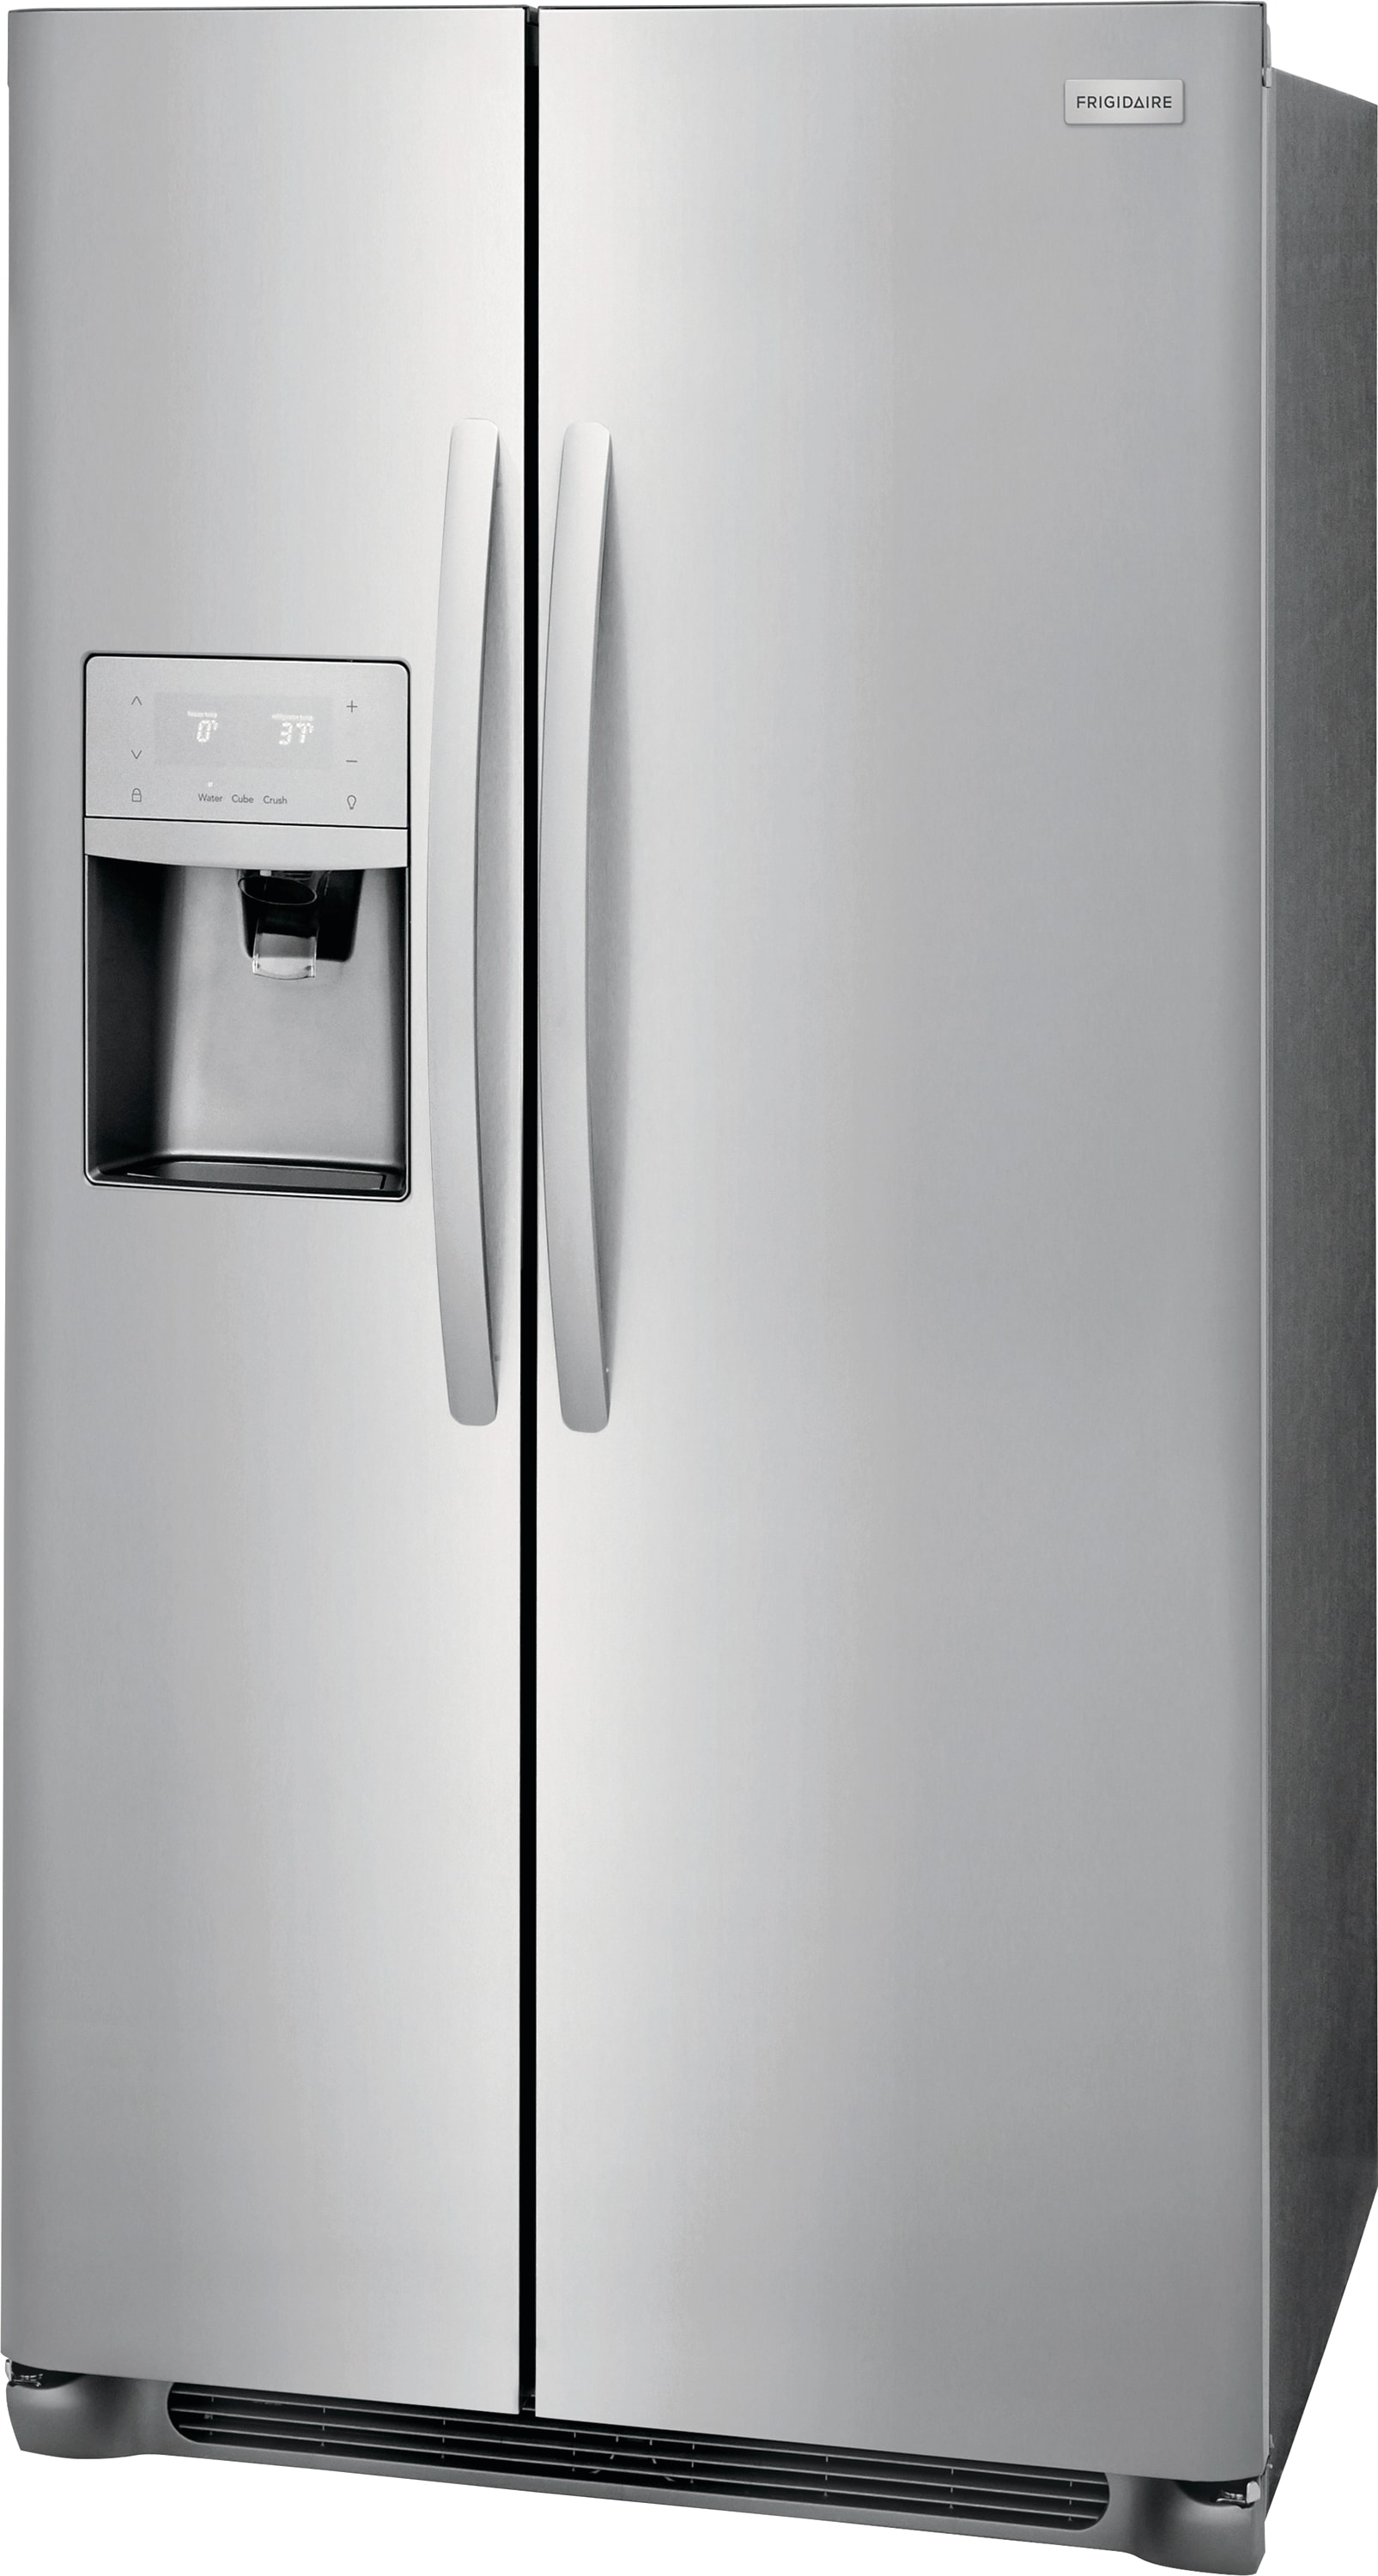 Model: FFSC2323TS | 22.0 Cu. Ft. Counter-Depth Side-by-Side Refrigerator